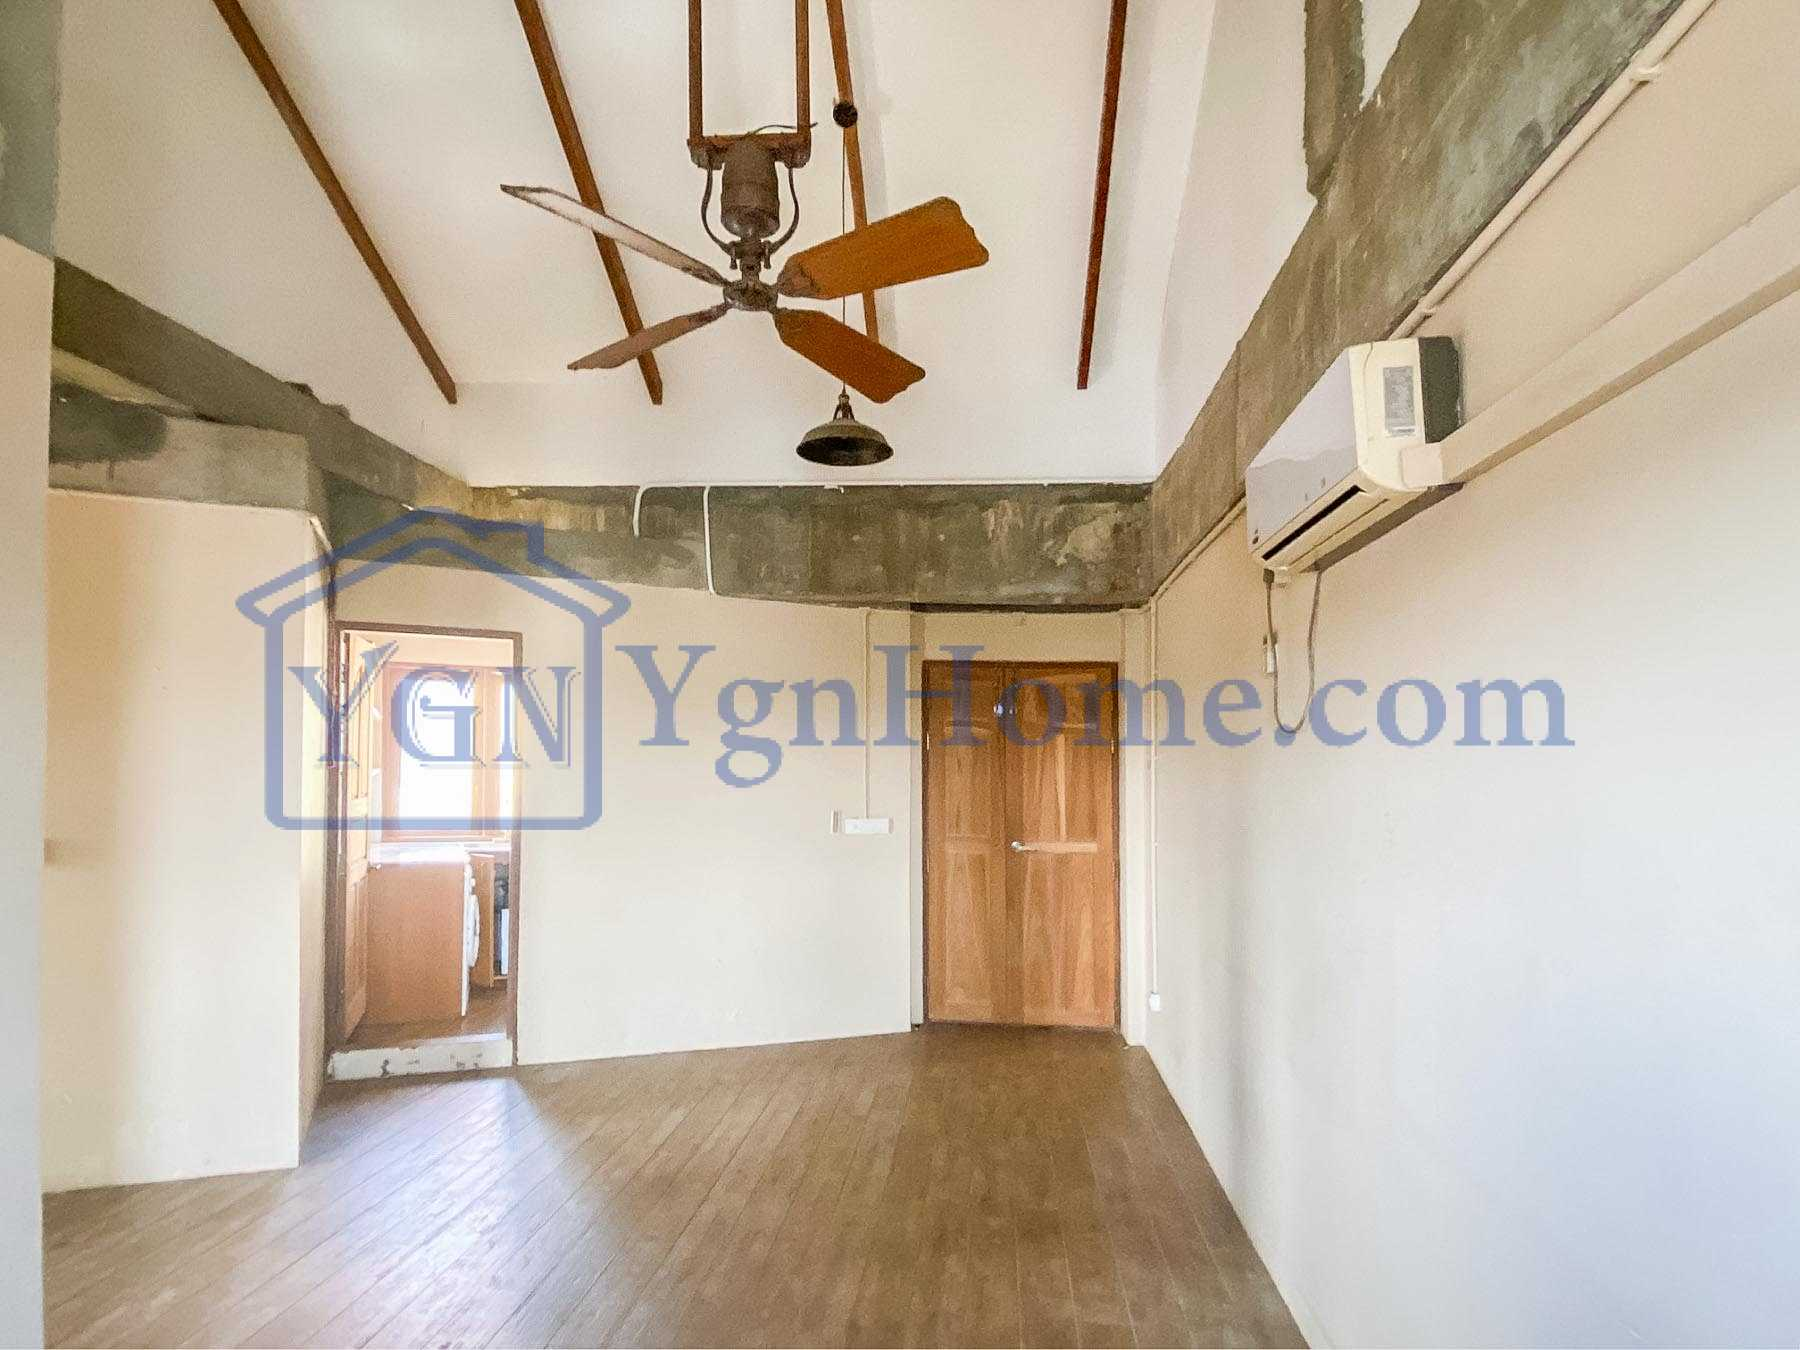 3BR Apartment for RENT in Ngar Htat Gyi Pagoda Street, Bahan Tsp.